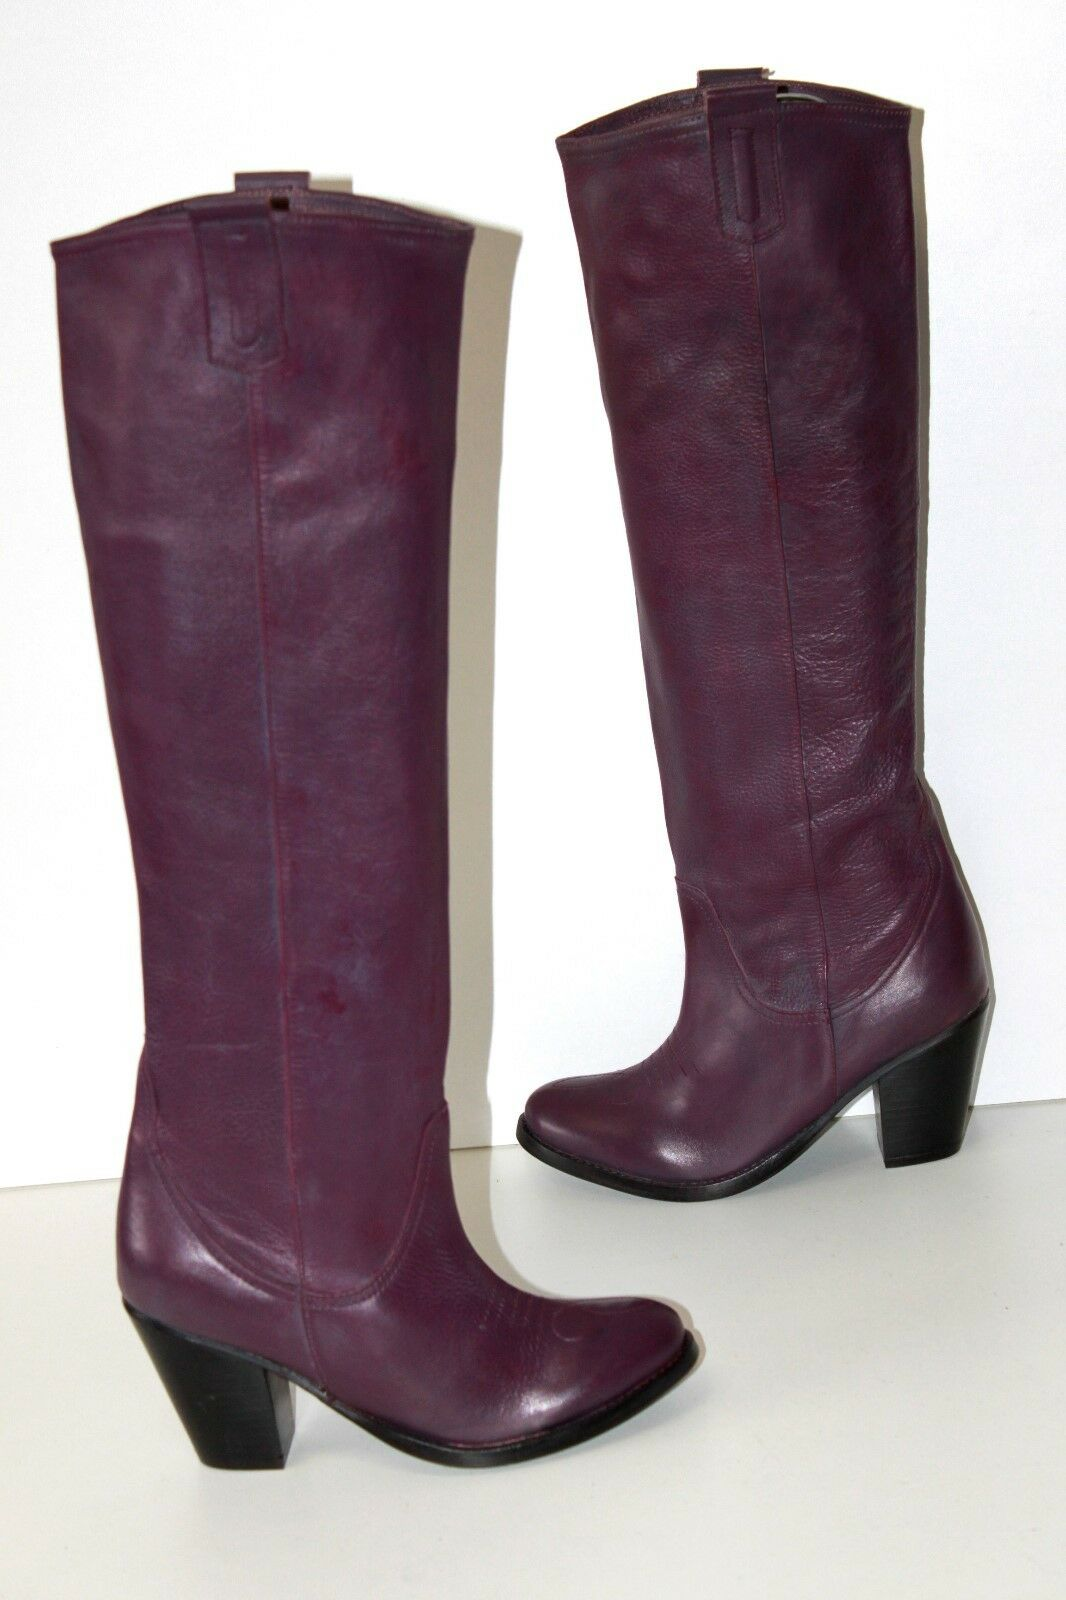 DELPOL Riding Boots heels Leather Flexible Purple T 38 MINT